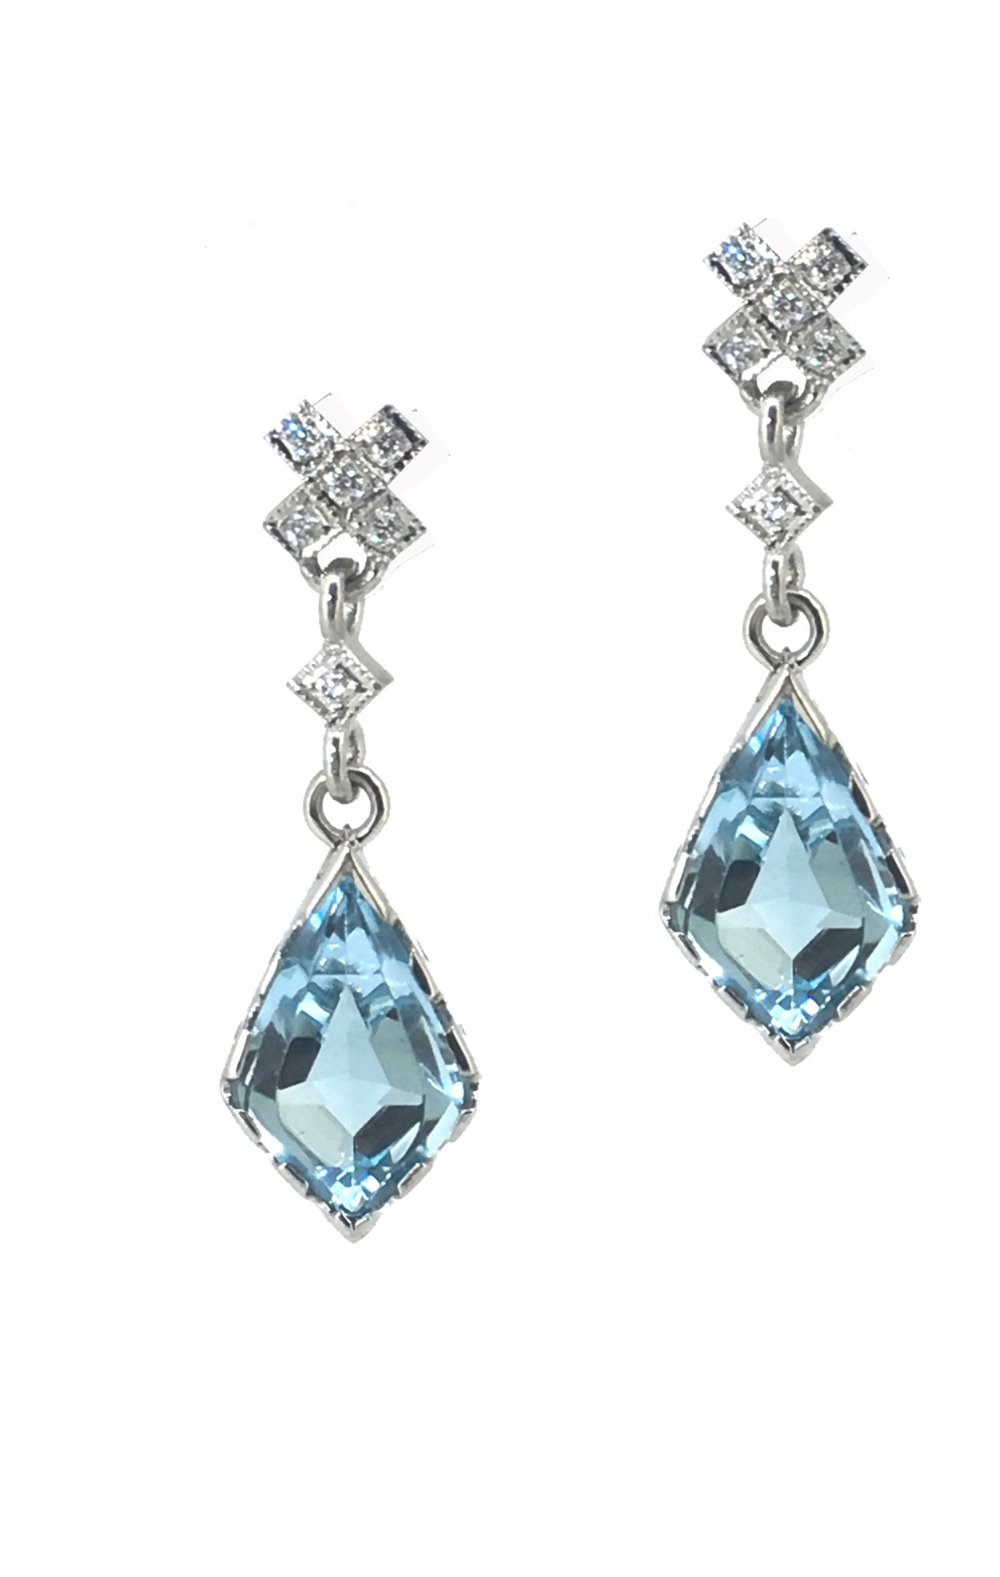 Blue Topaz & Diamond Earrings.JPG